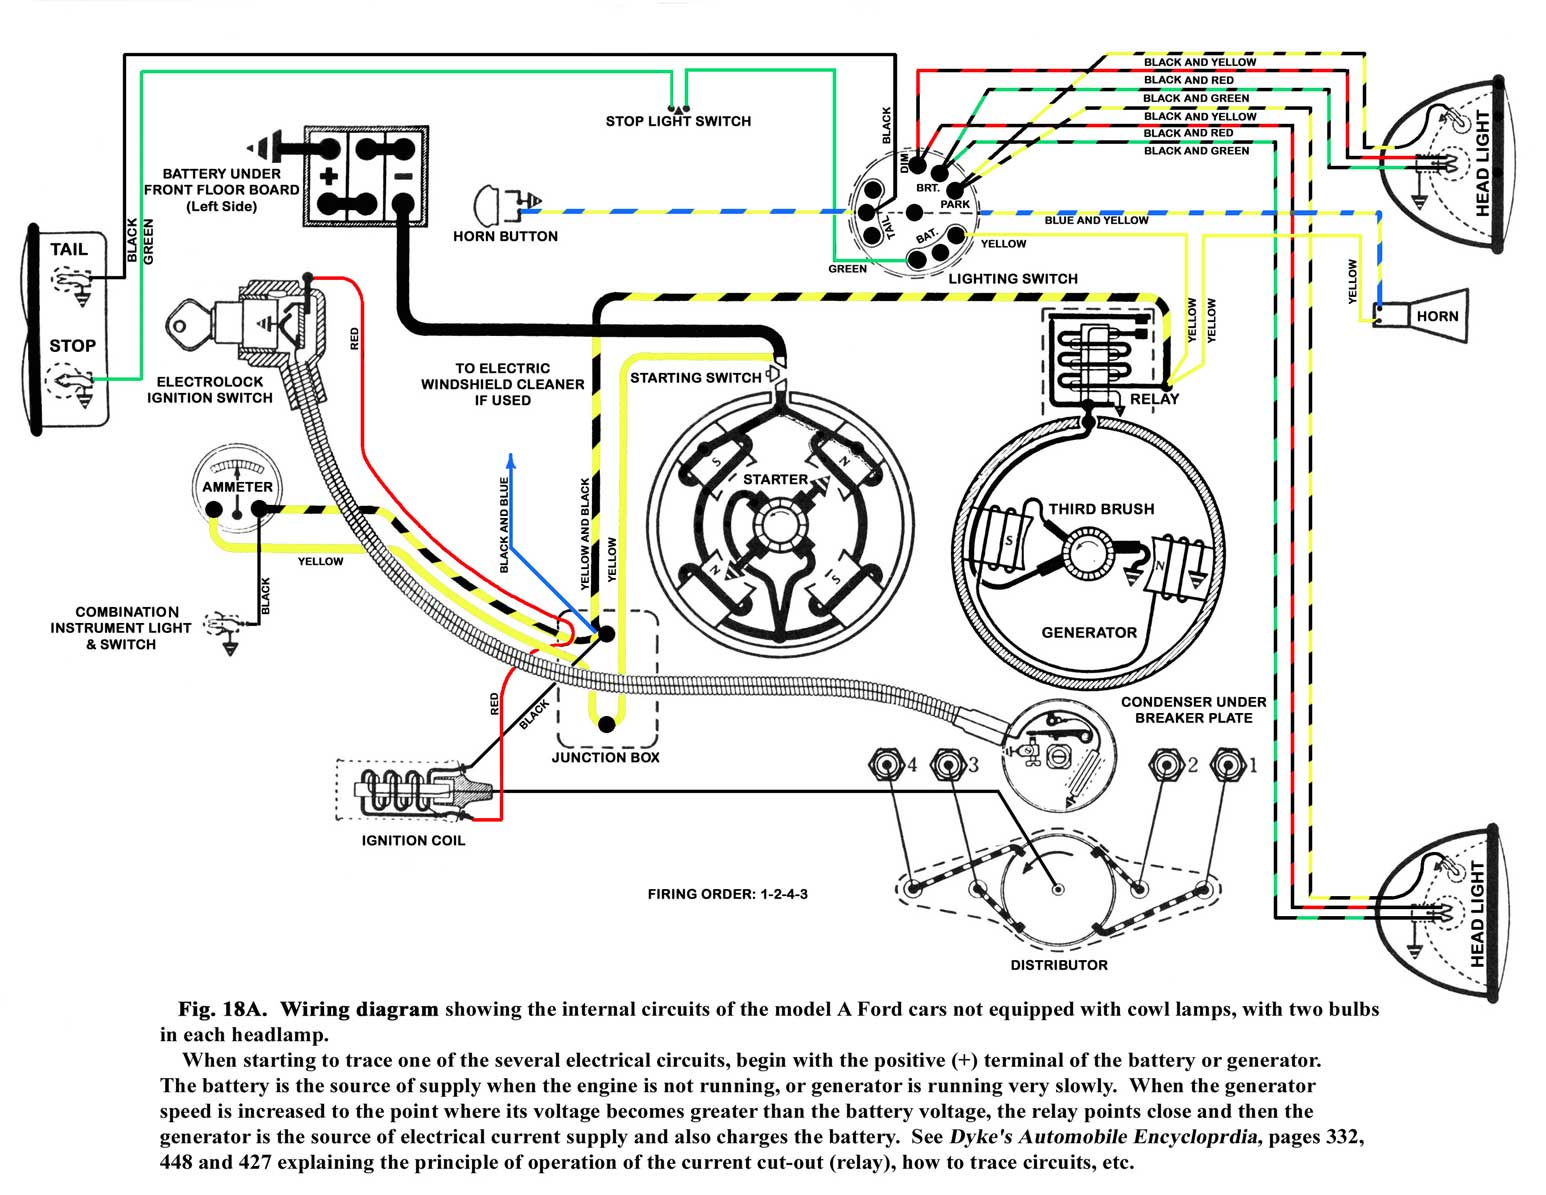 hight resolution of ford wiring harness diagrams wiring diagram detailed ford 3000 tractor wiring harness diagram ford wiring harness diagrams